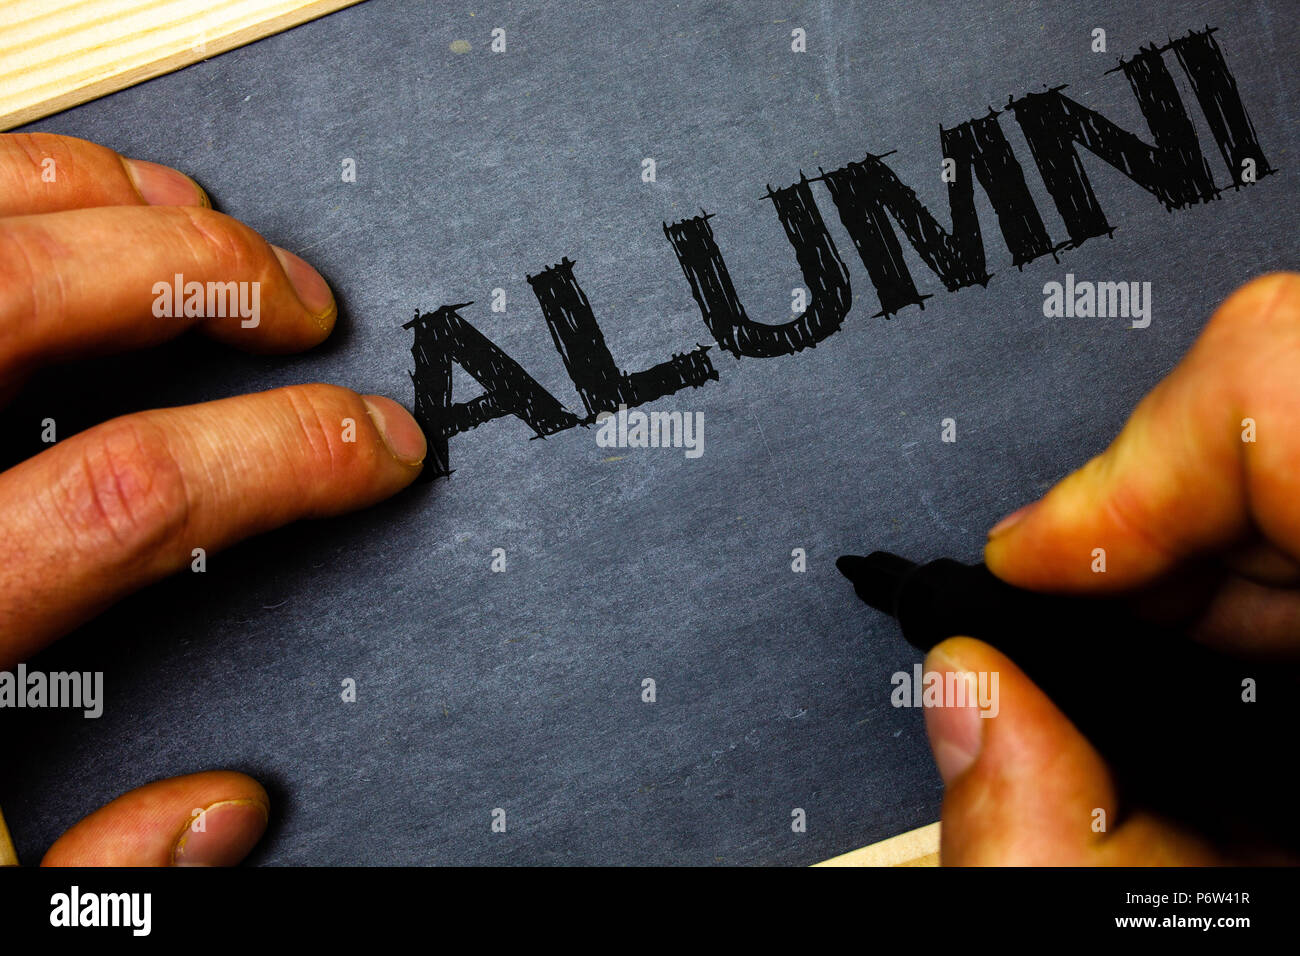 Word writing text Alumni. Business concept for Alum Old graduate Postgraduate Gathering College Academy Celebration Man hold holding black marker mark - Stock Image